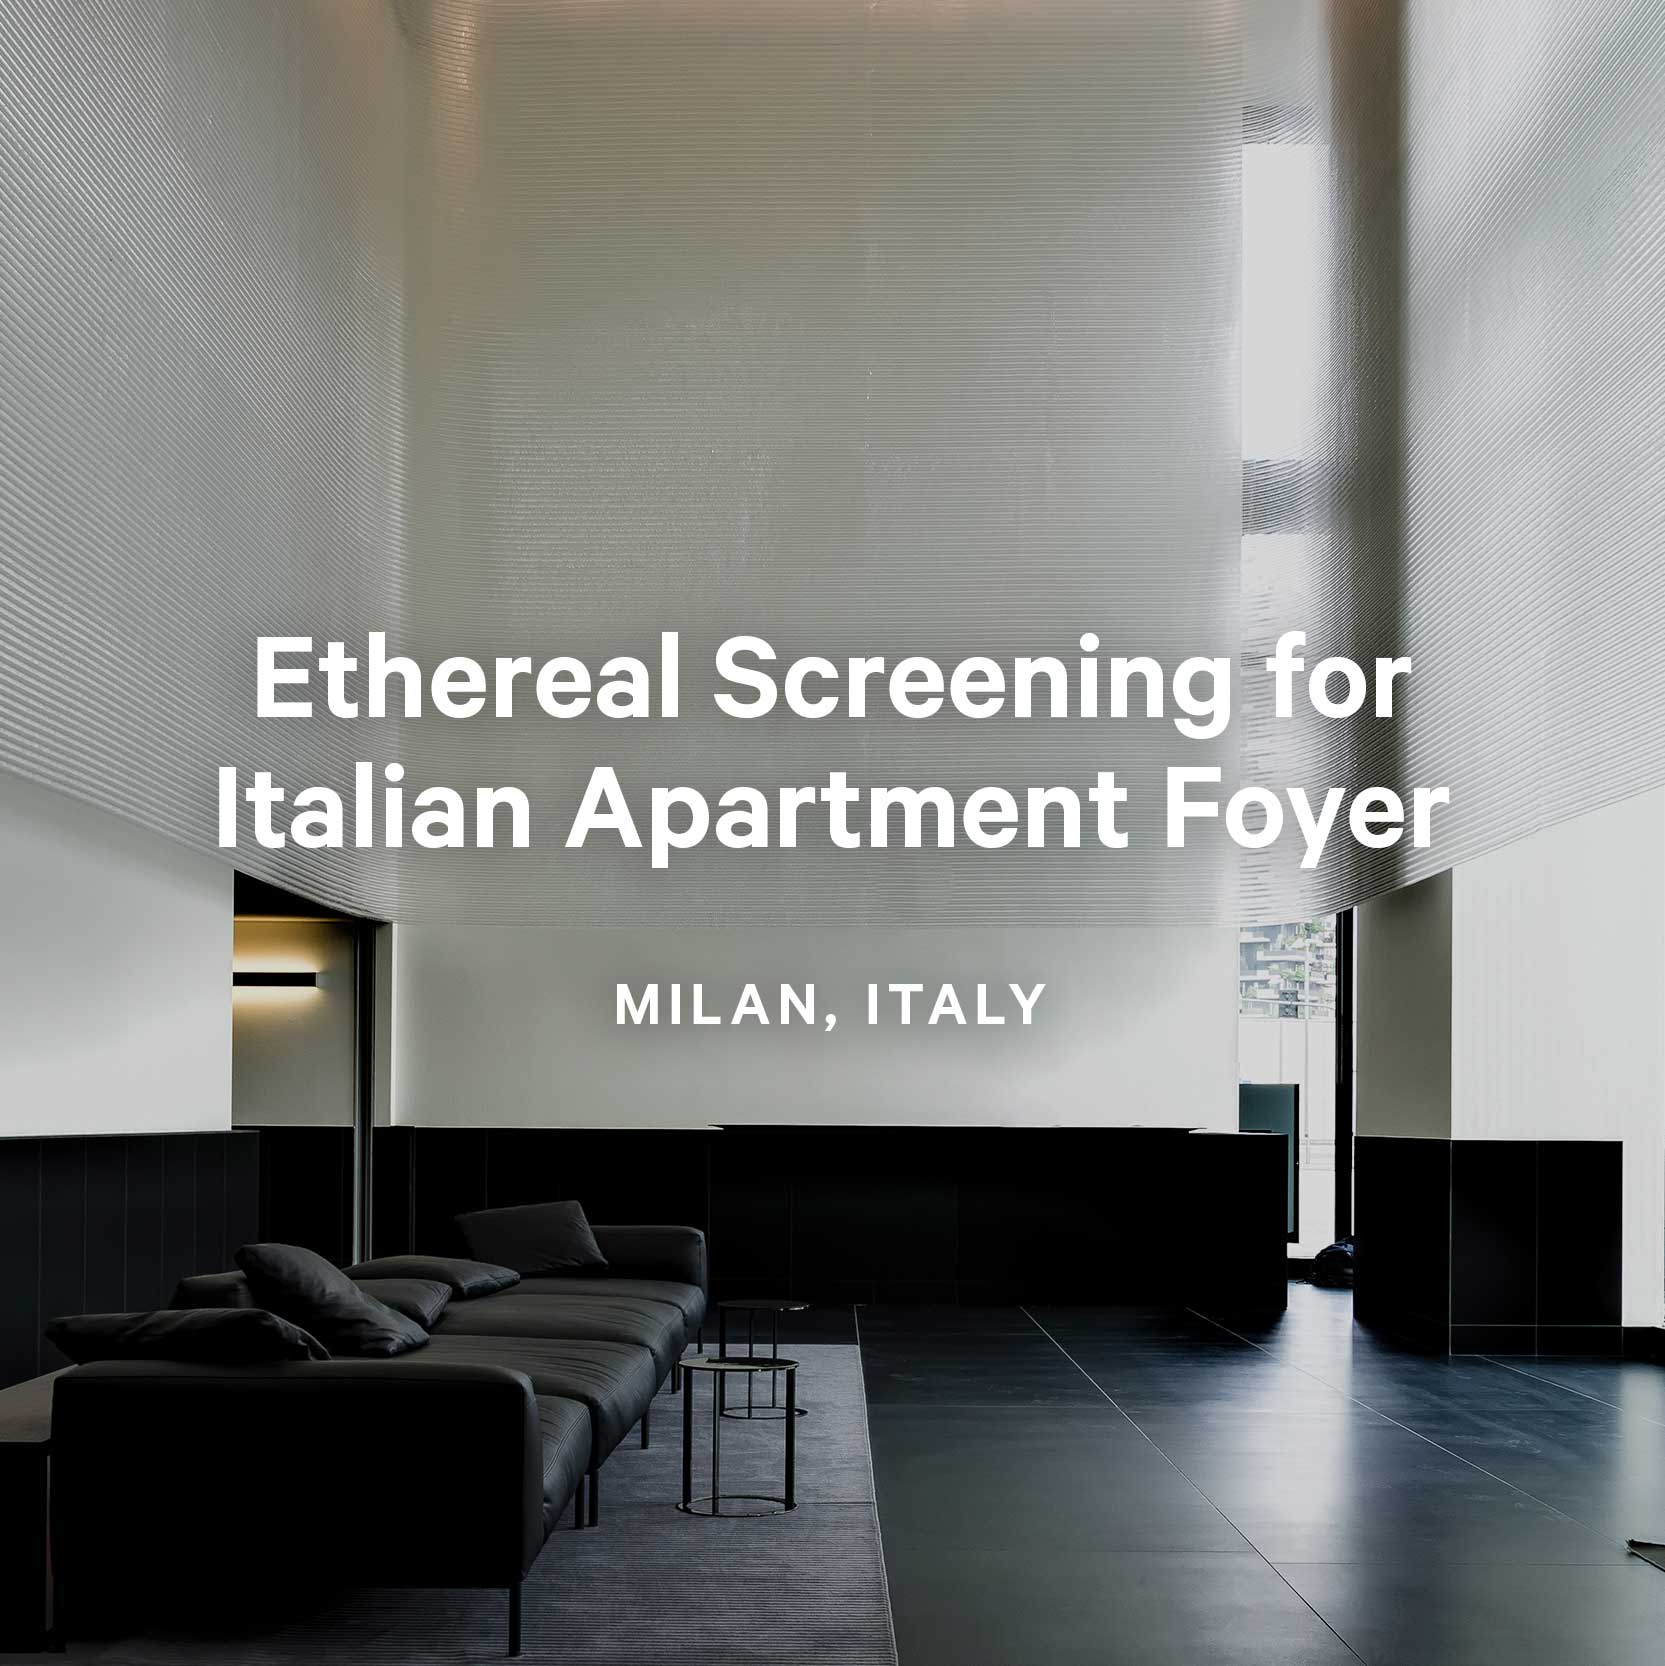 Ethereal Screening for Apartment Foyer